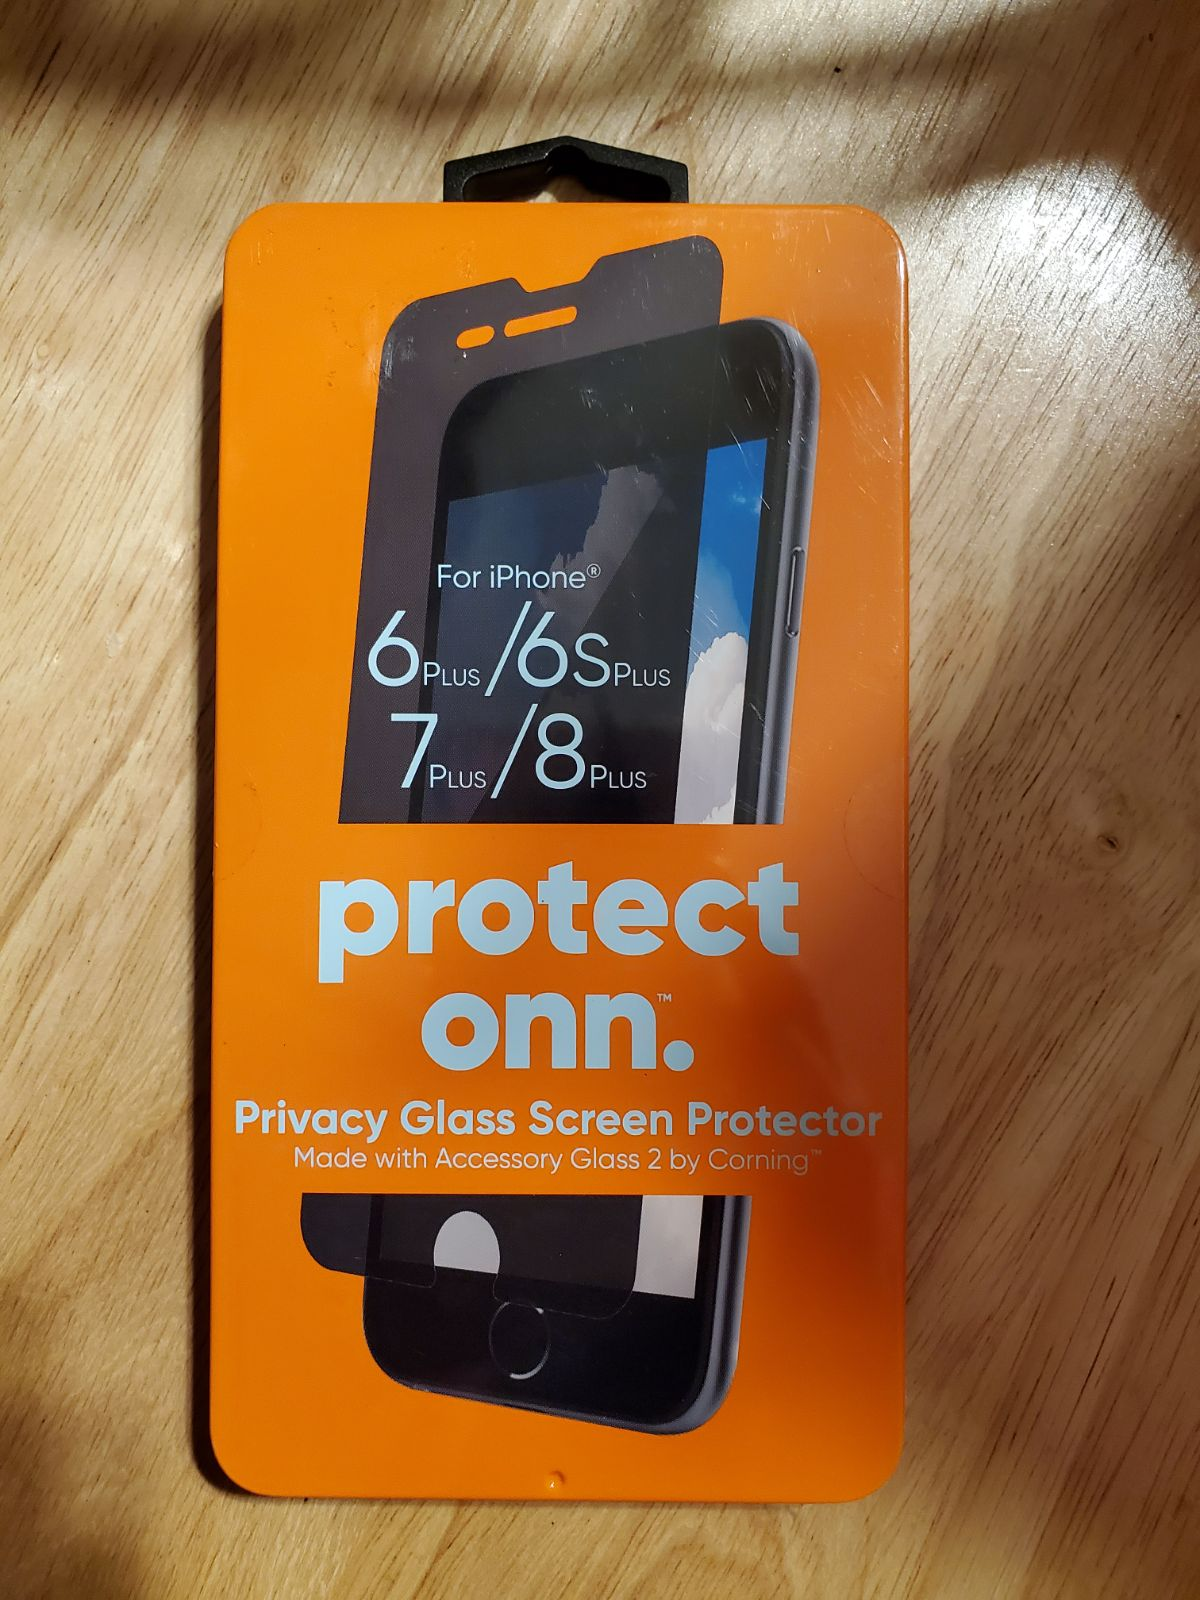 Protect onn. Privacy glass screen protec